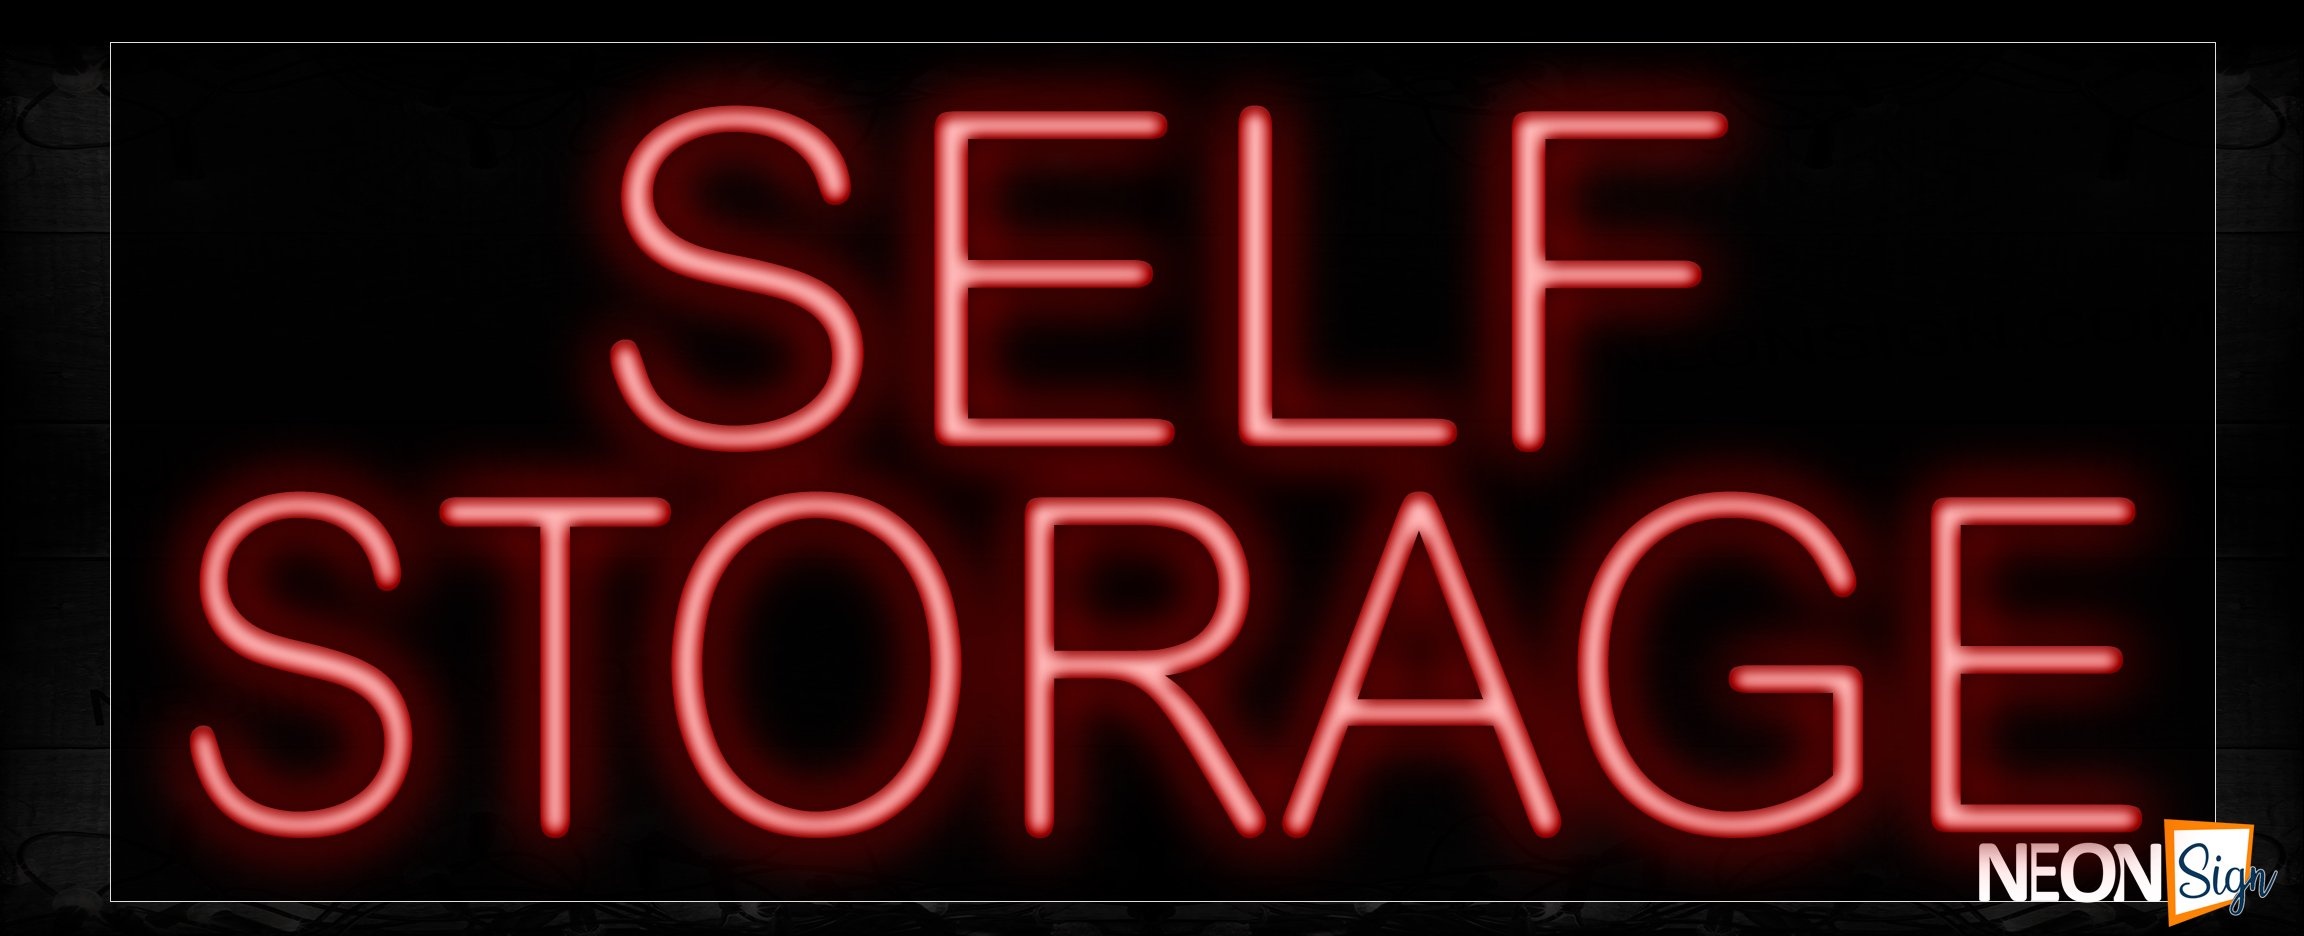 Image of Self Storage In Red Neon Sign